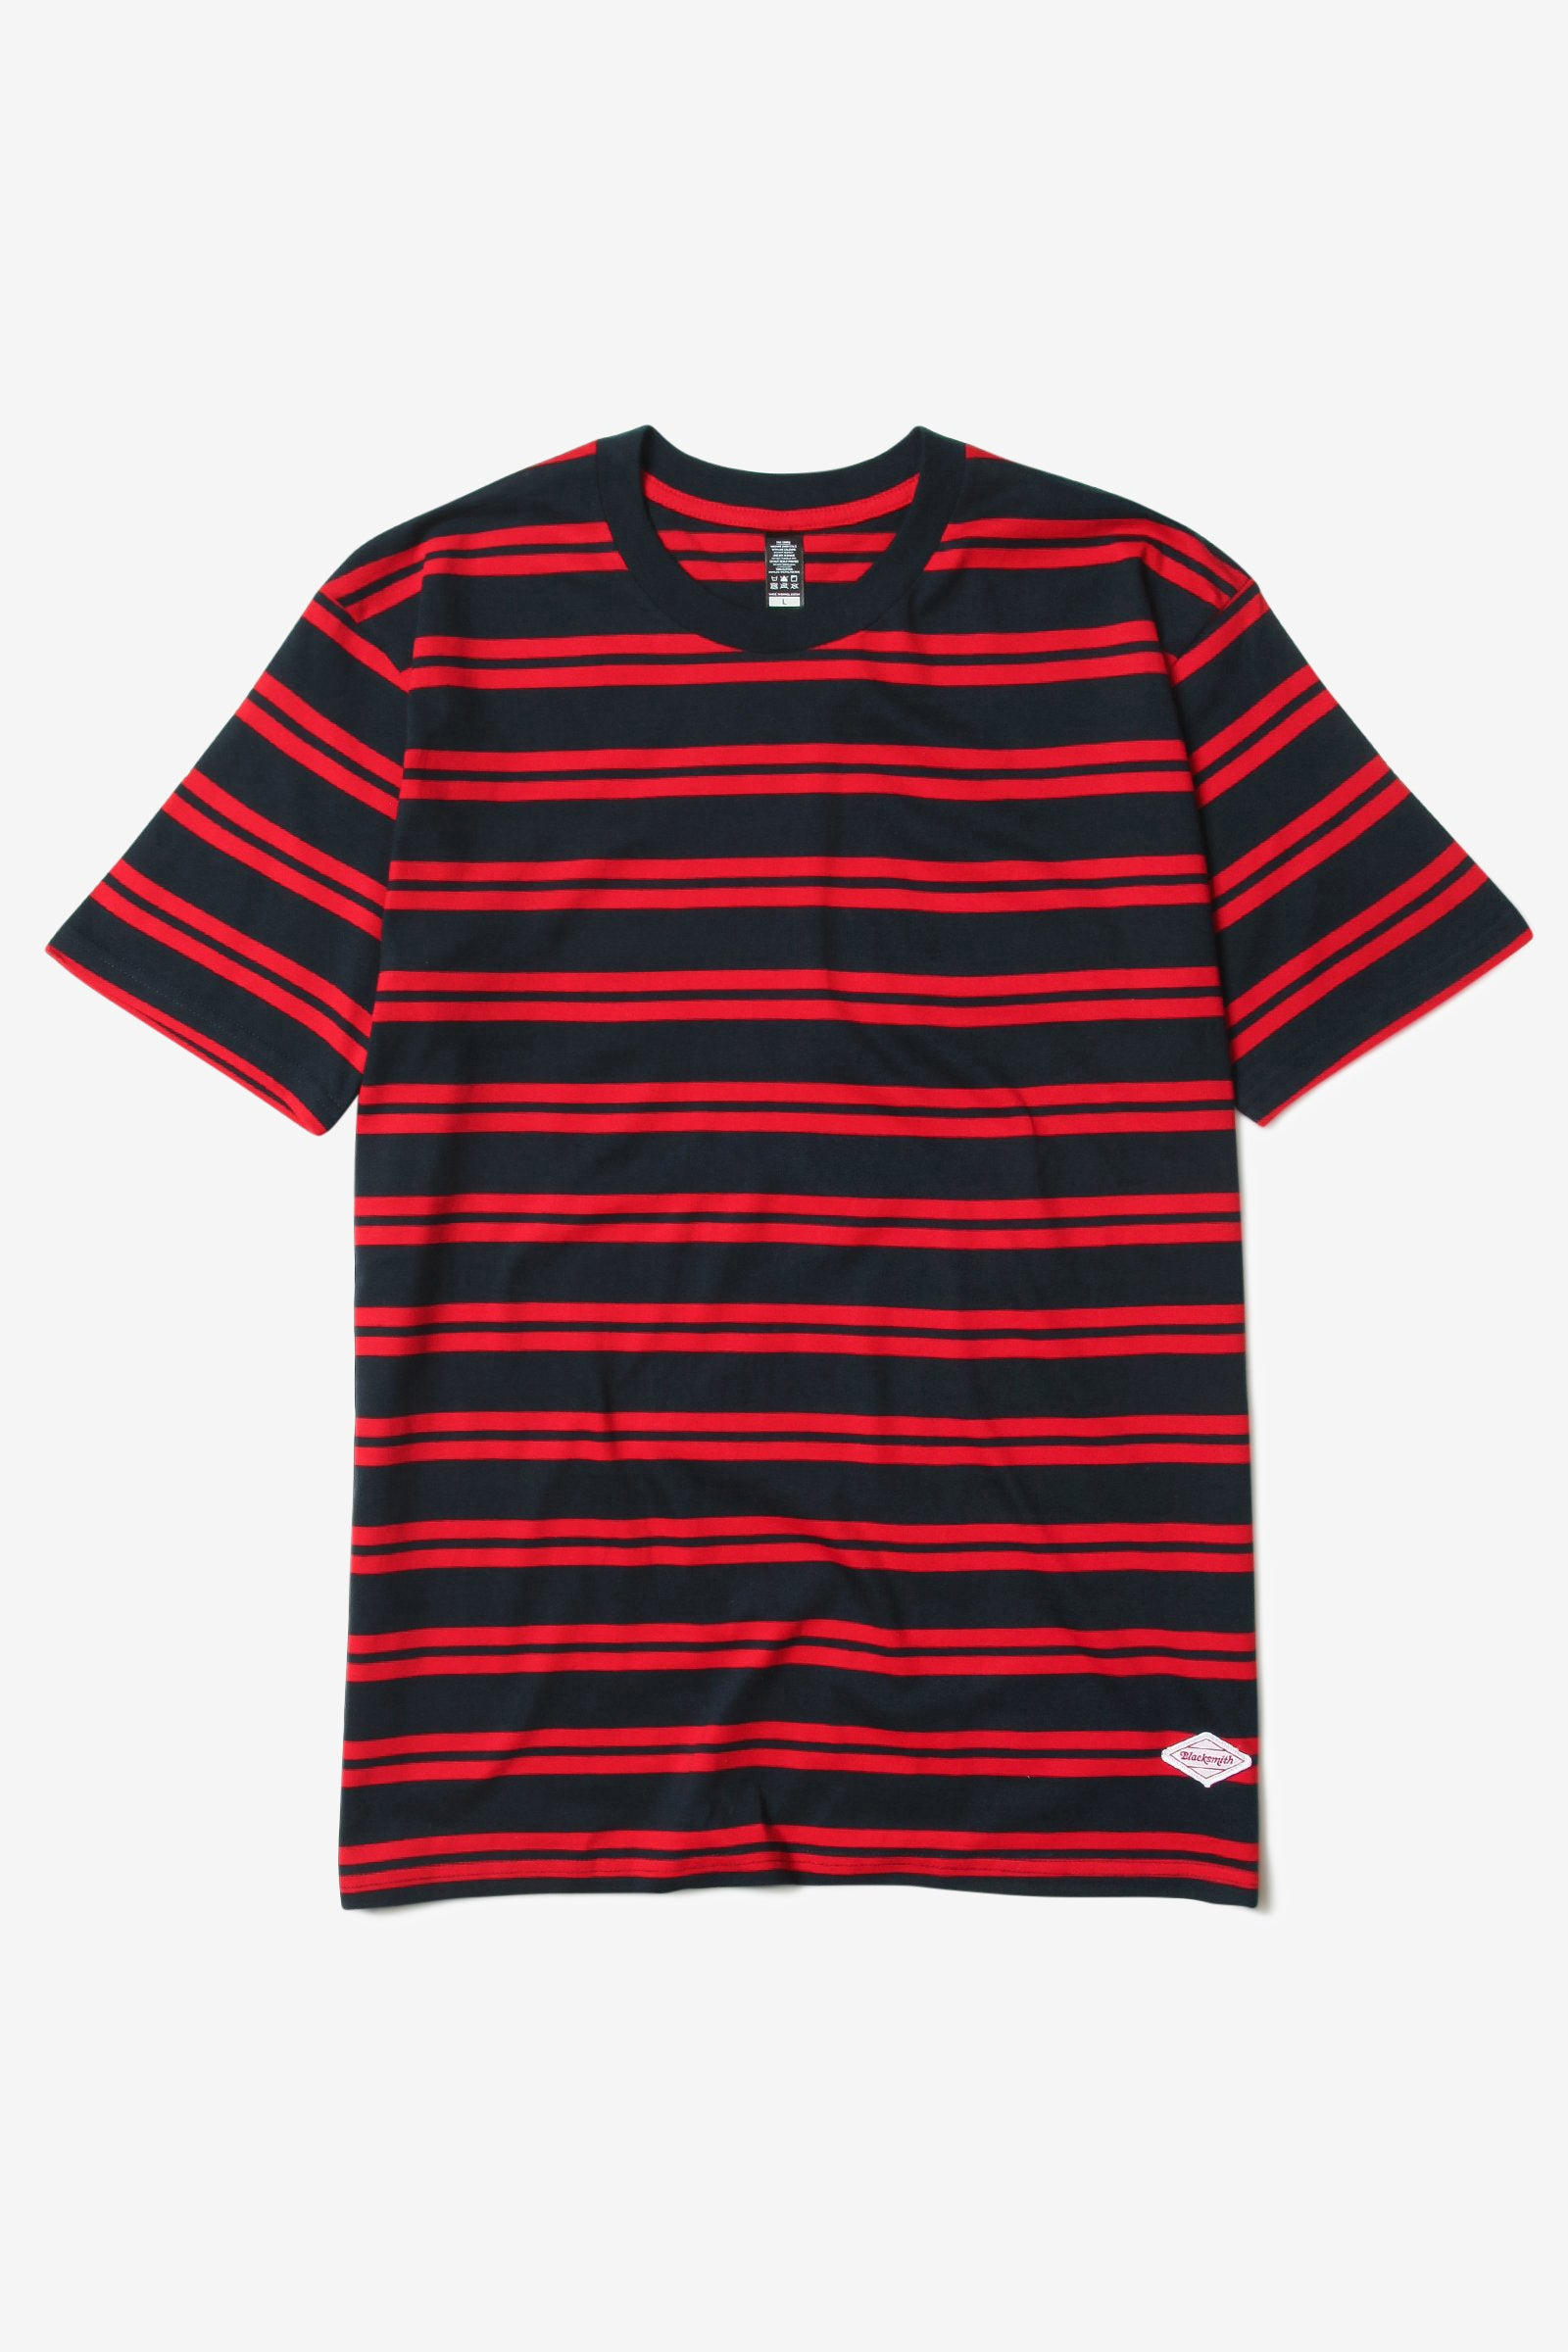 Blacksmith - Border Striped Tee - Navy